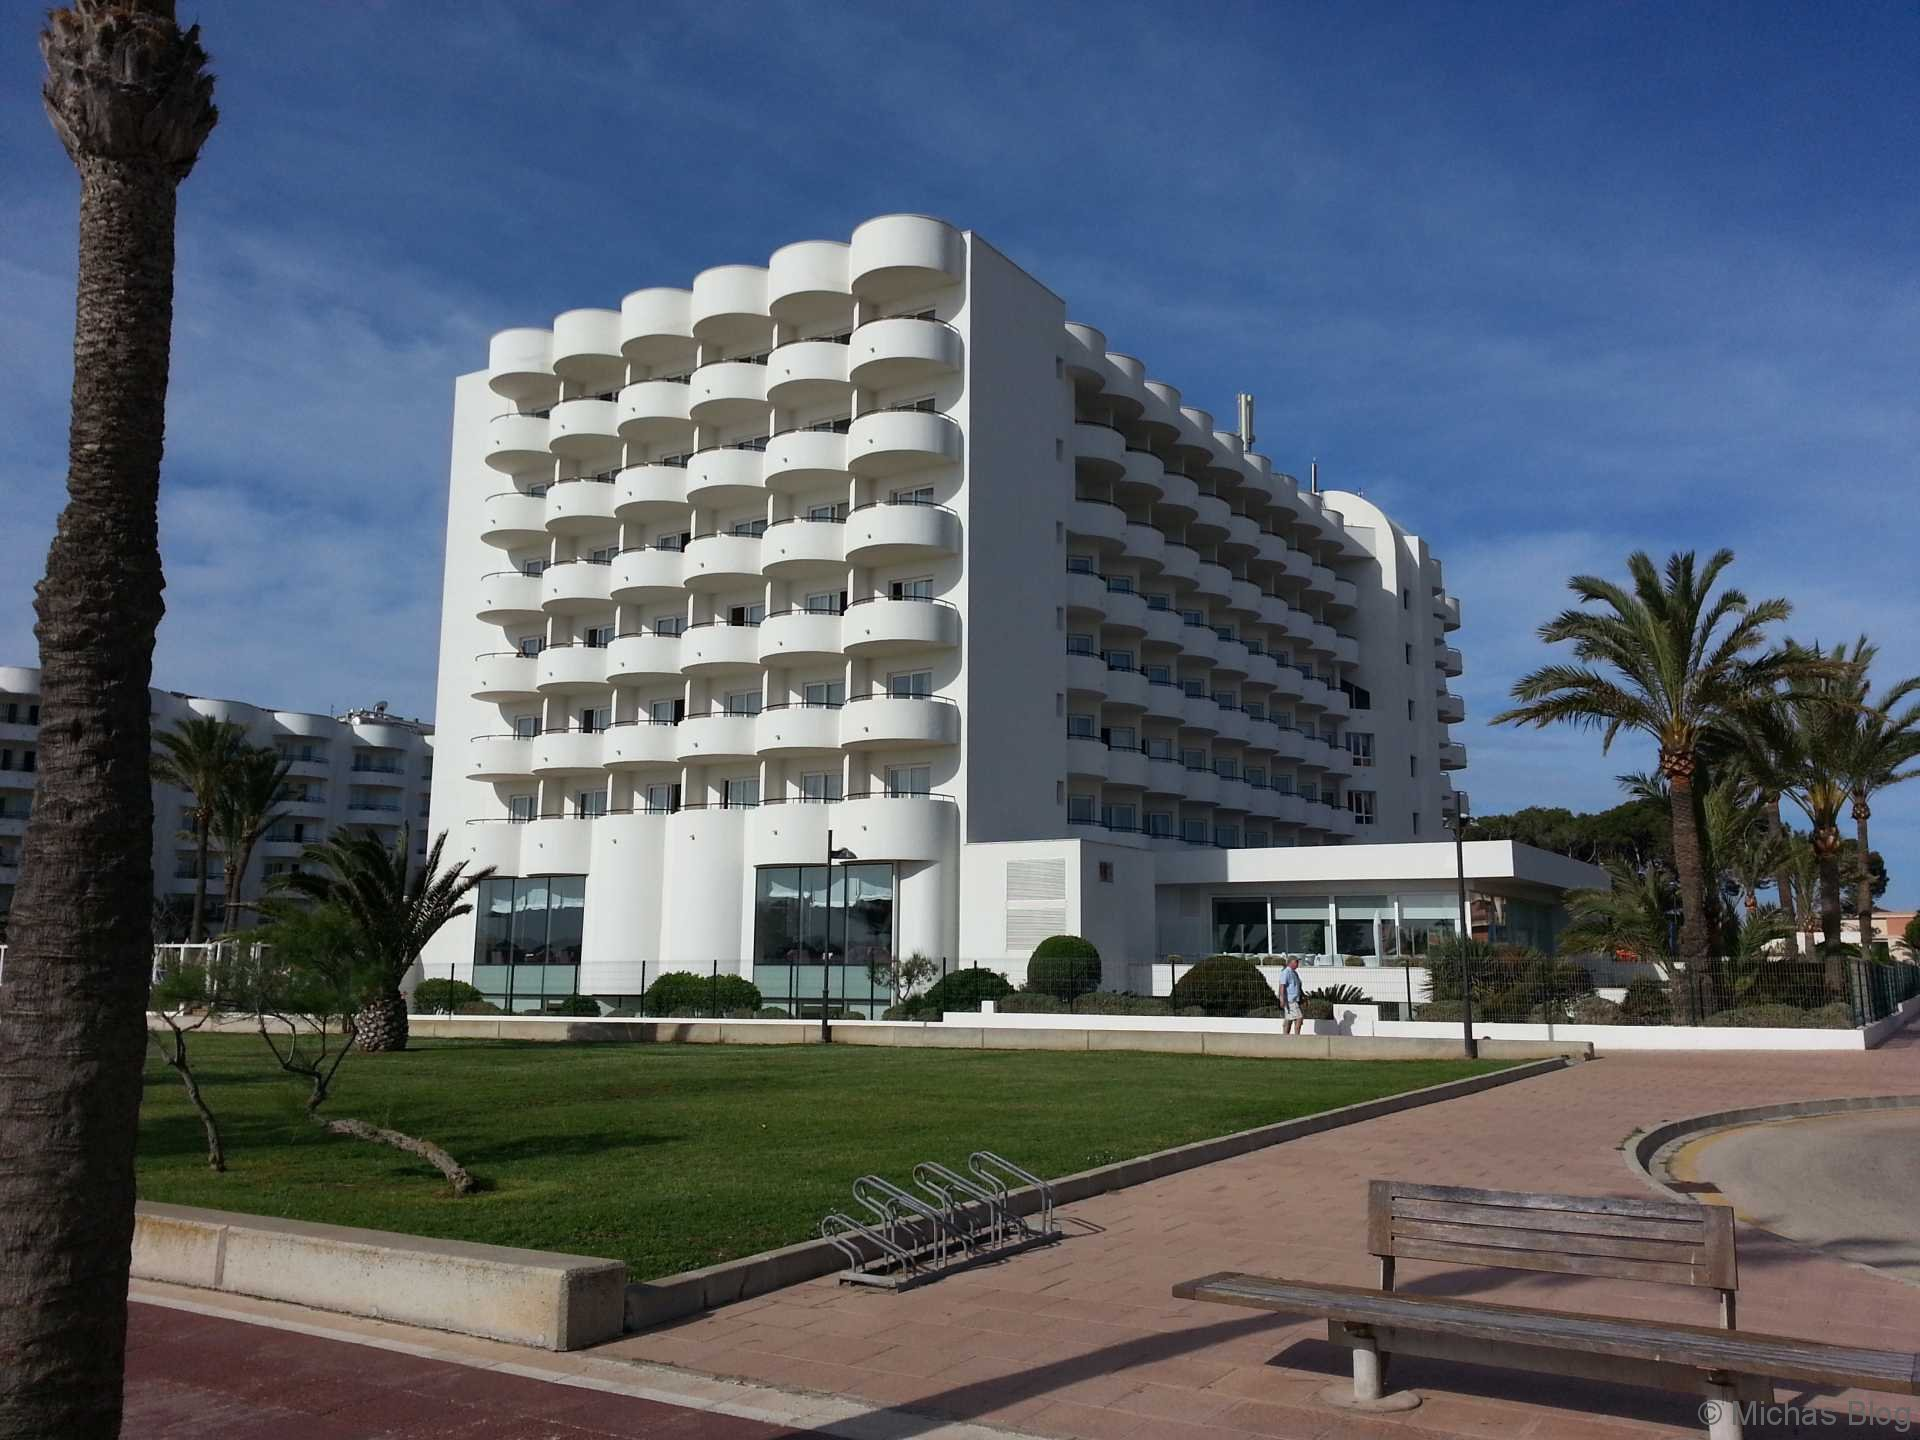 Unser Hotel Hipocampo Playa